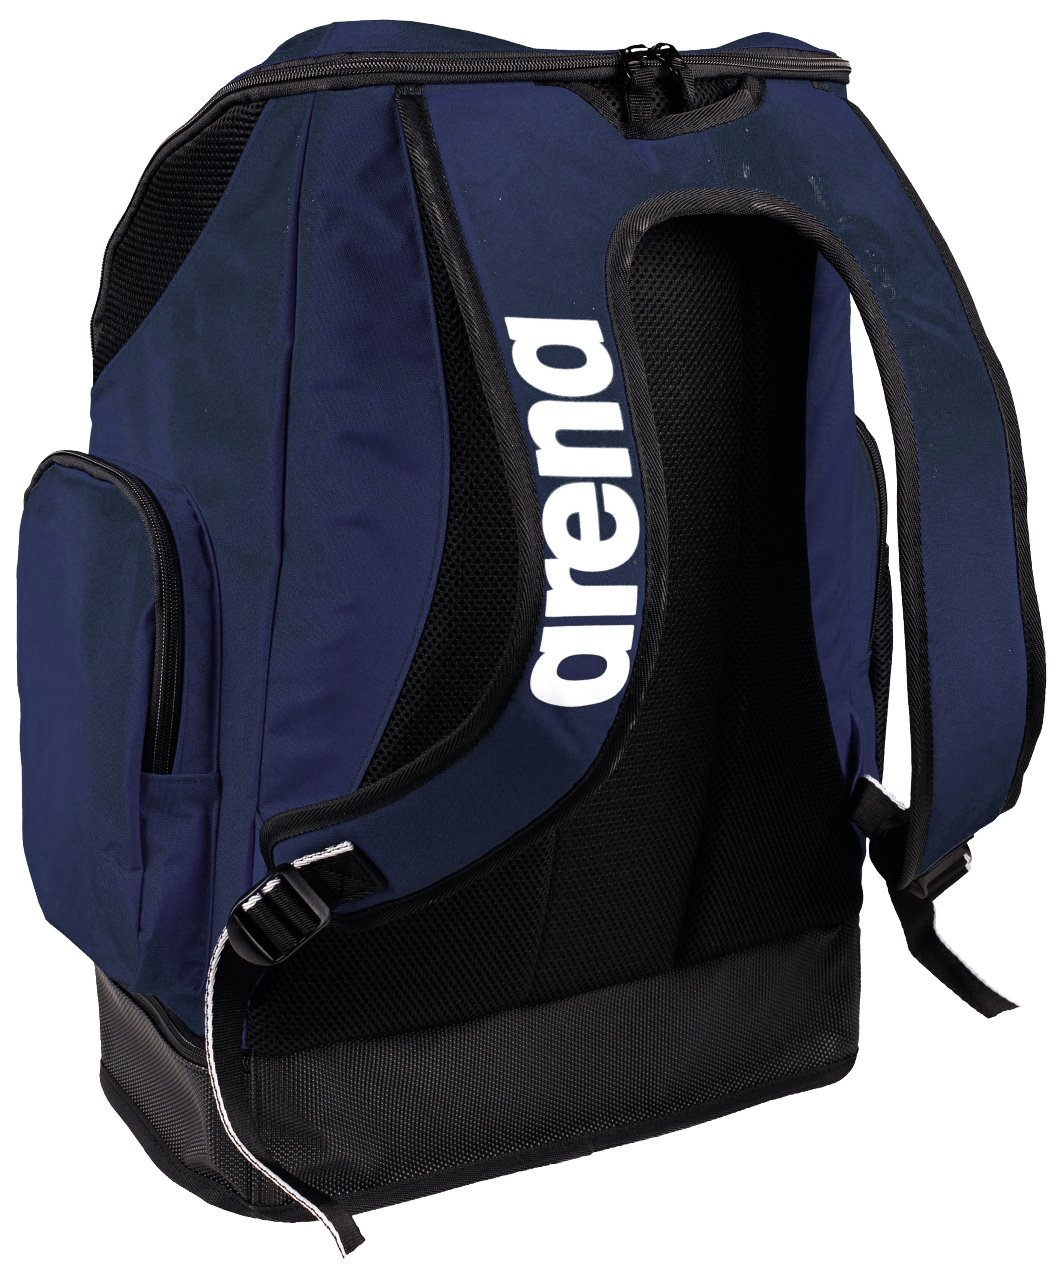 Amazon.com : arena Spiky 2 Large Swim Backpack, Navy Team : Sports & Outdoors